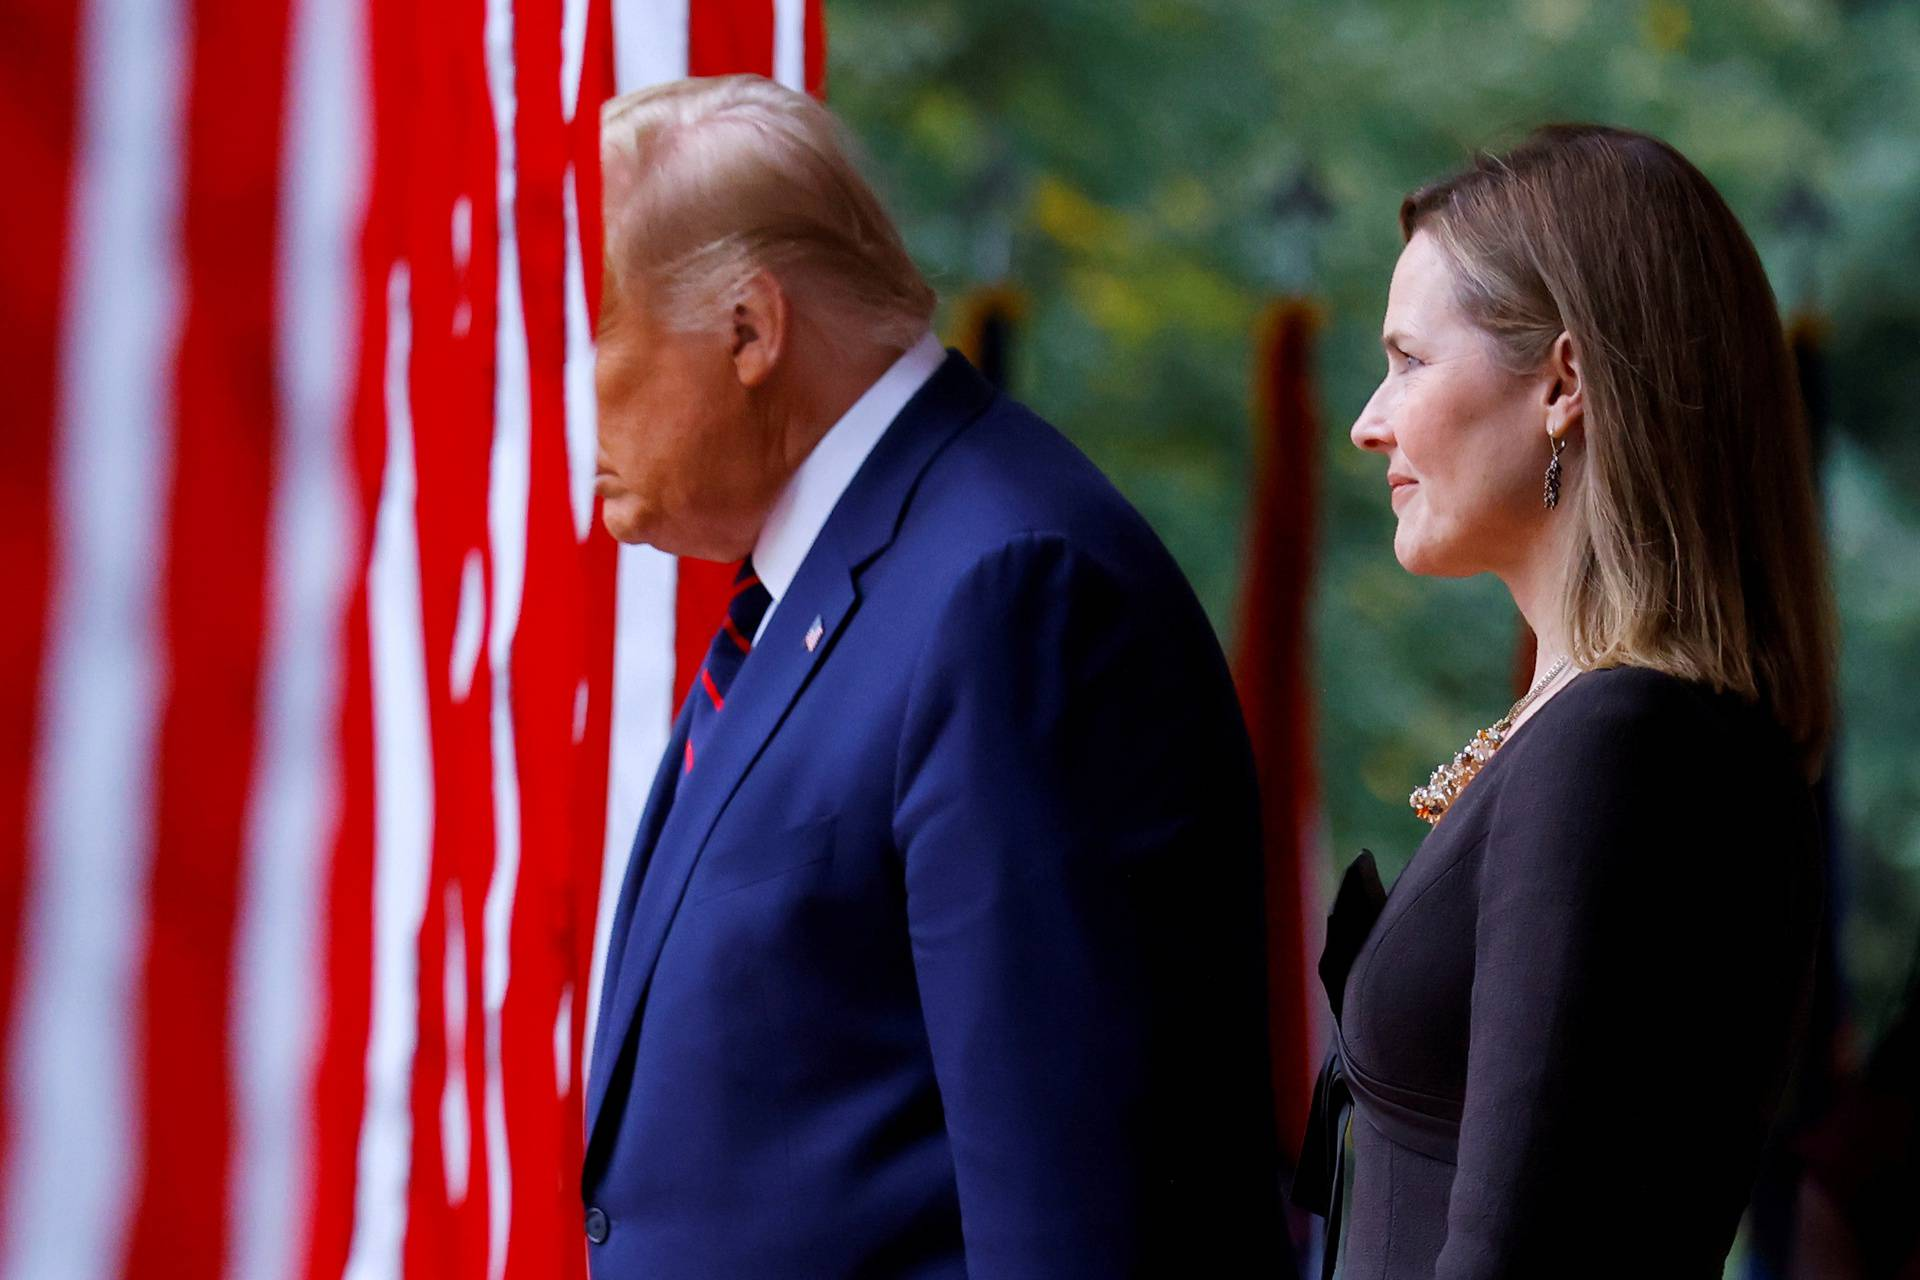 U.S President Donald Trump holds an event to announce his nominee of U.S. Court of Appeals for the Seventh Circuit Judge Amy Coney Barrett to fill the Supreme Court seat